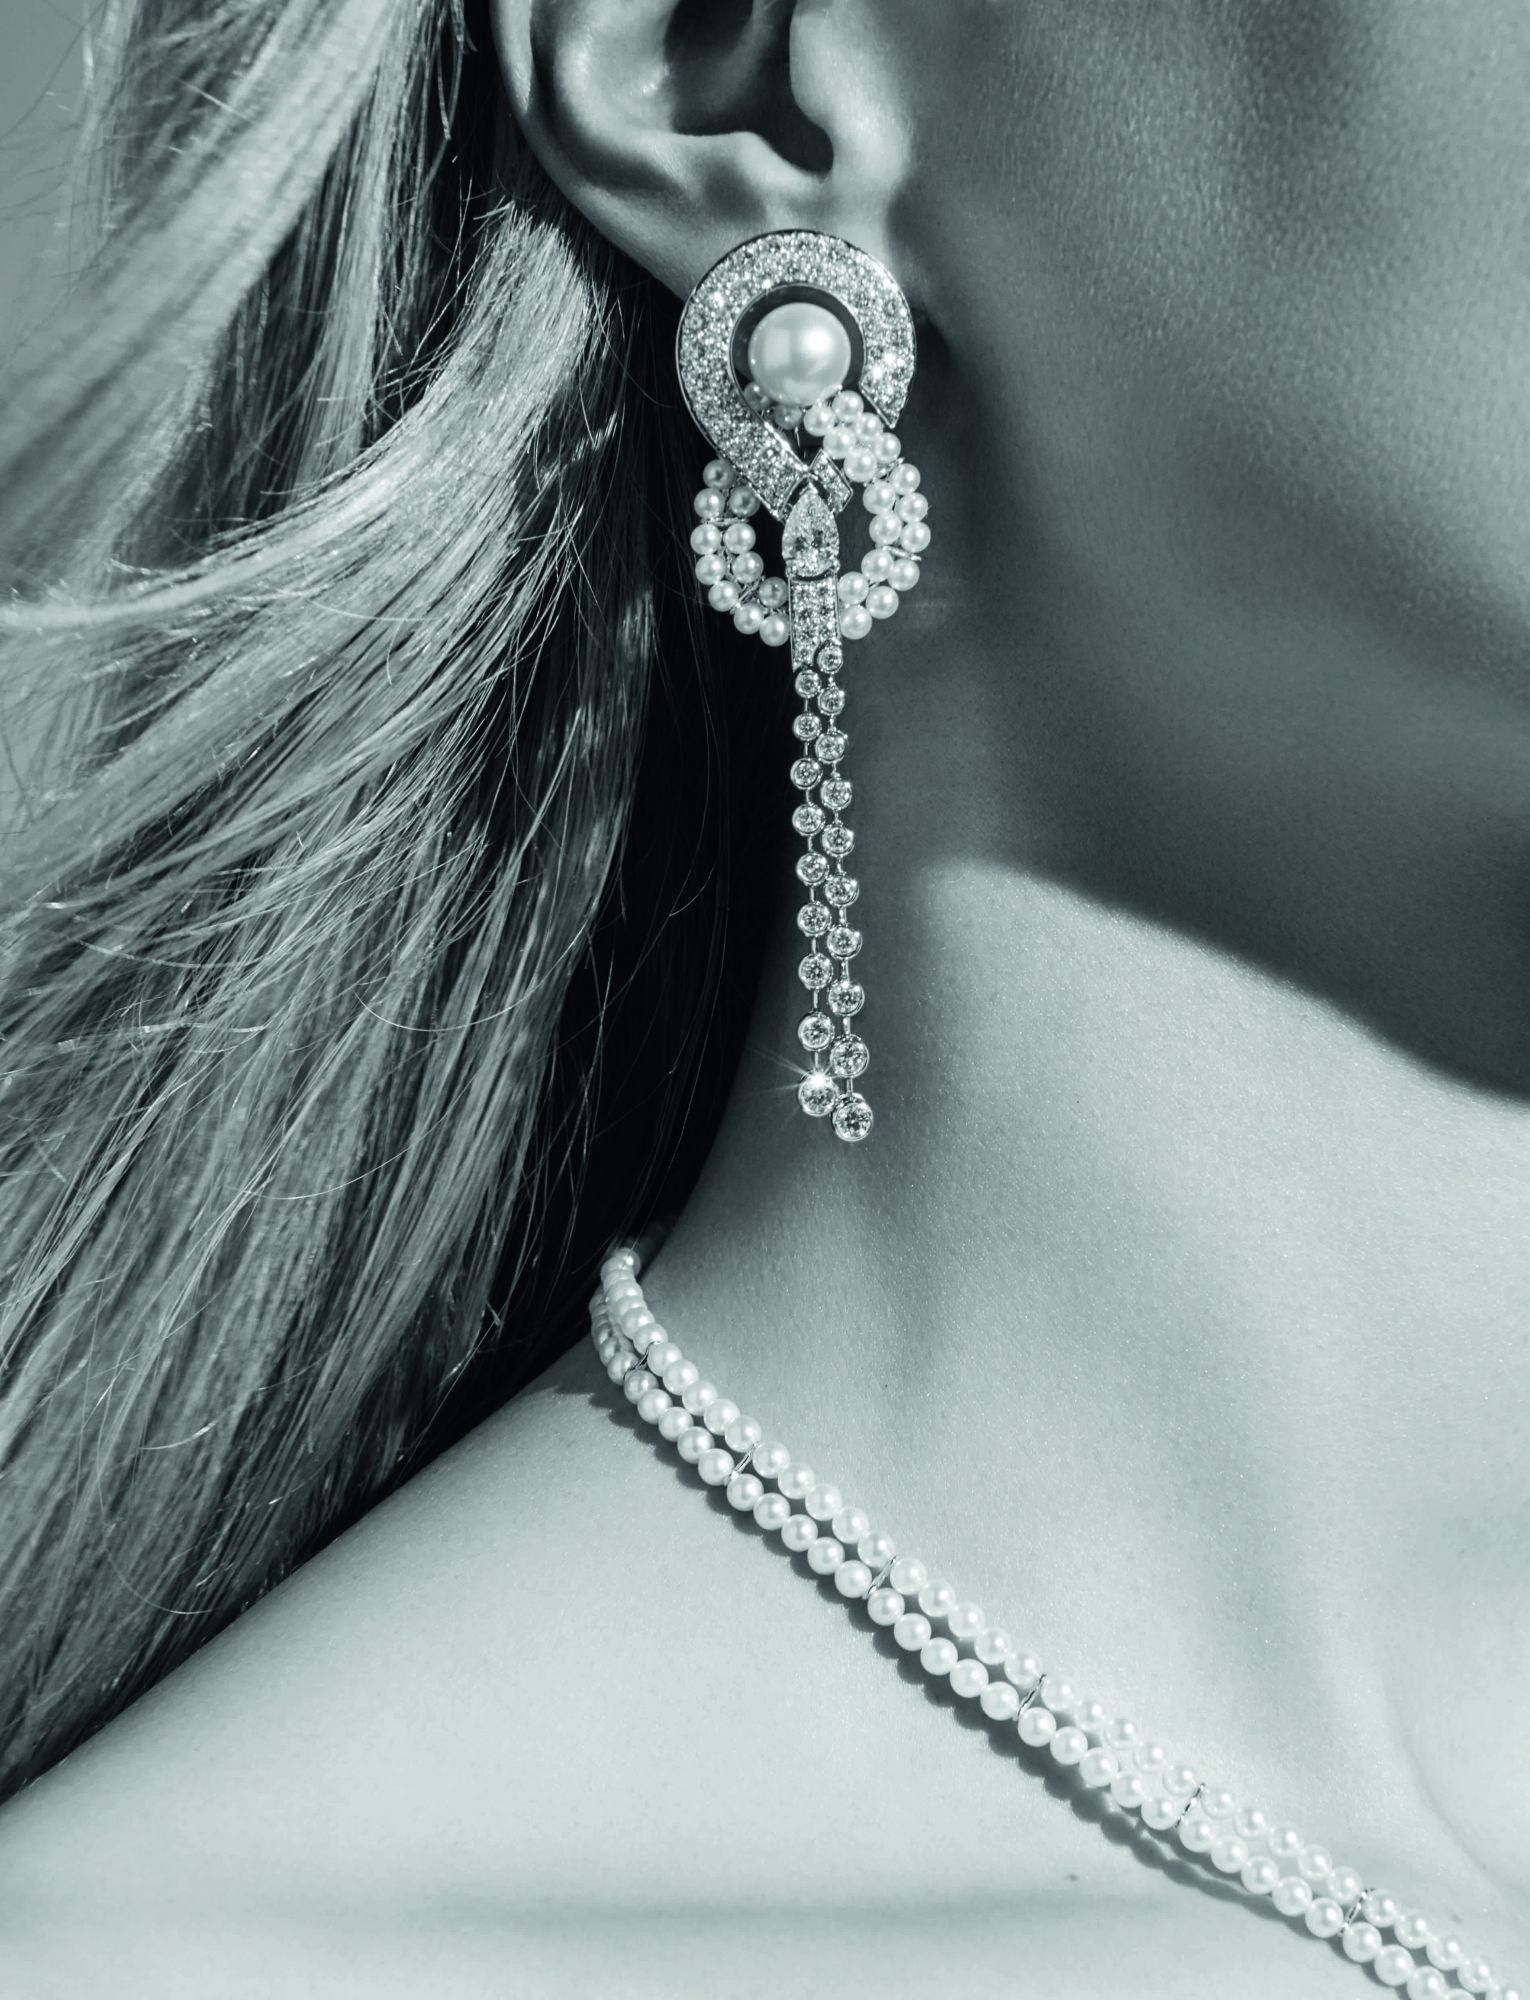 10 Epic Earrings That Bring The Drama